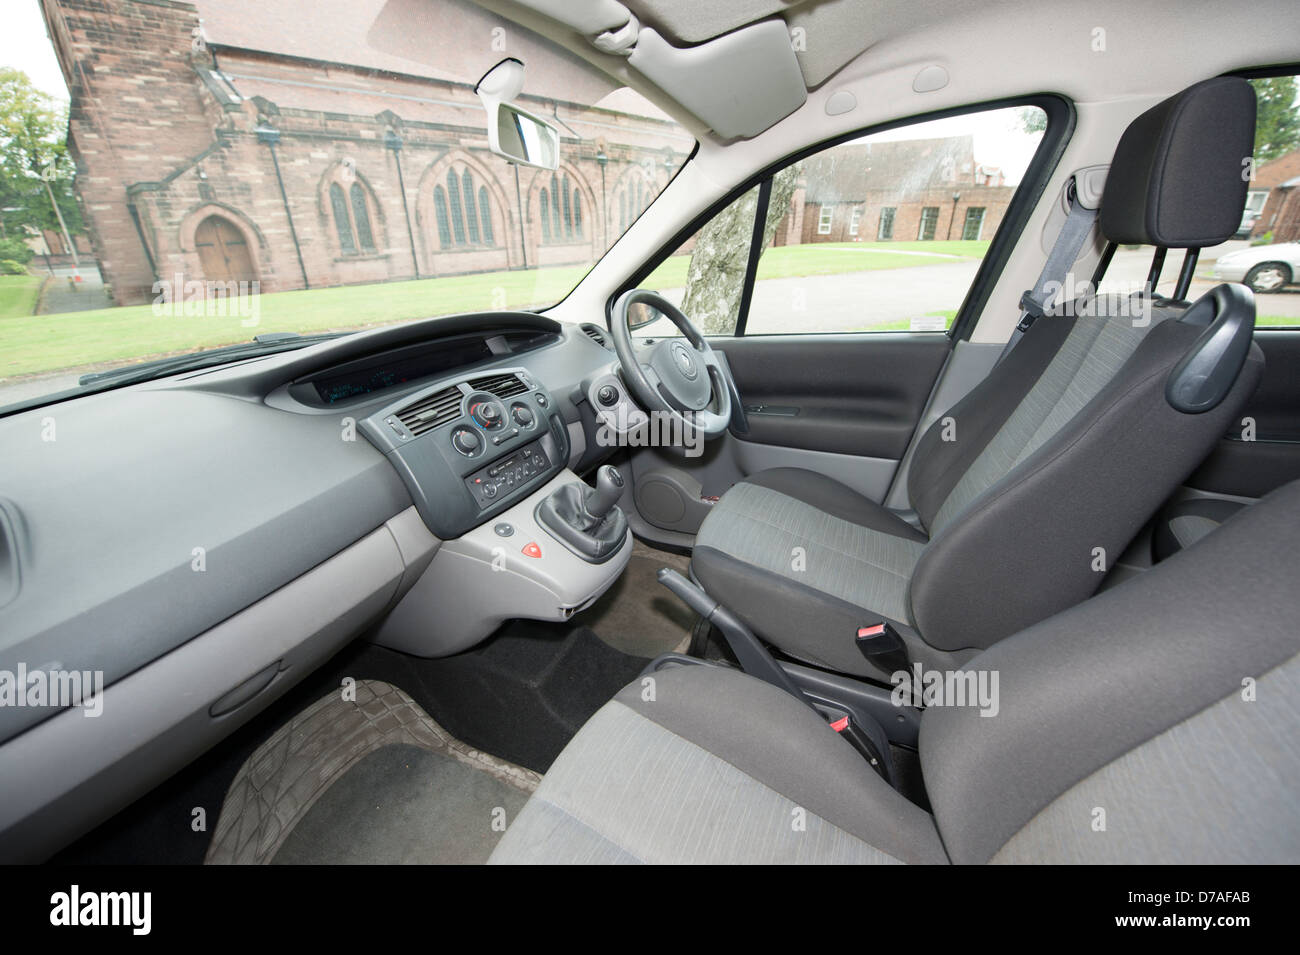 Inside Interior of Renault Scenic Car Stock Photo: 56165267 - Alamy